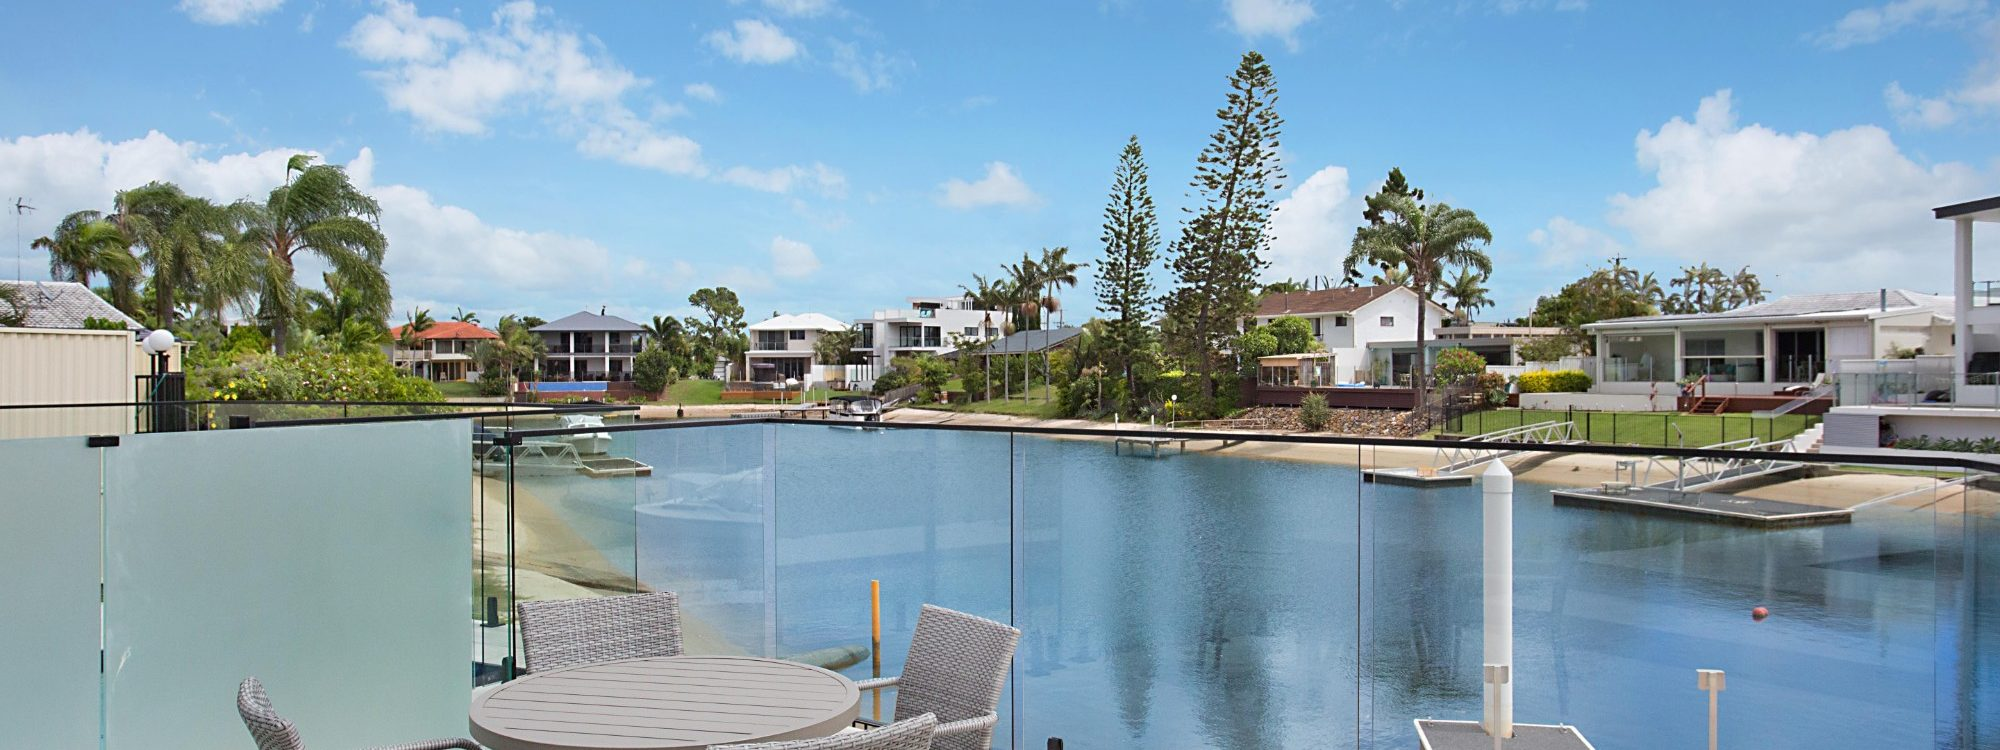 Bay Breeze - Broadbeach waters - Gold Coast - Canal Views and seating area